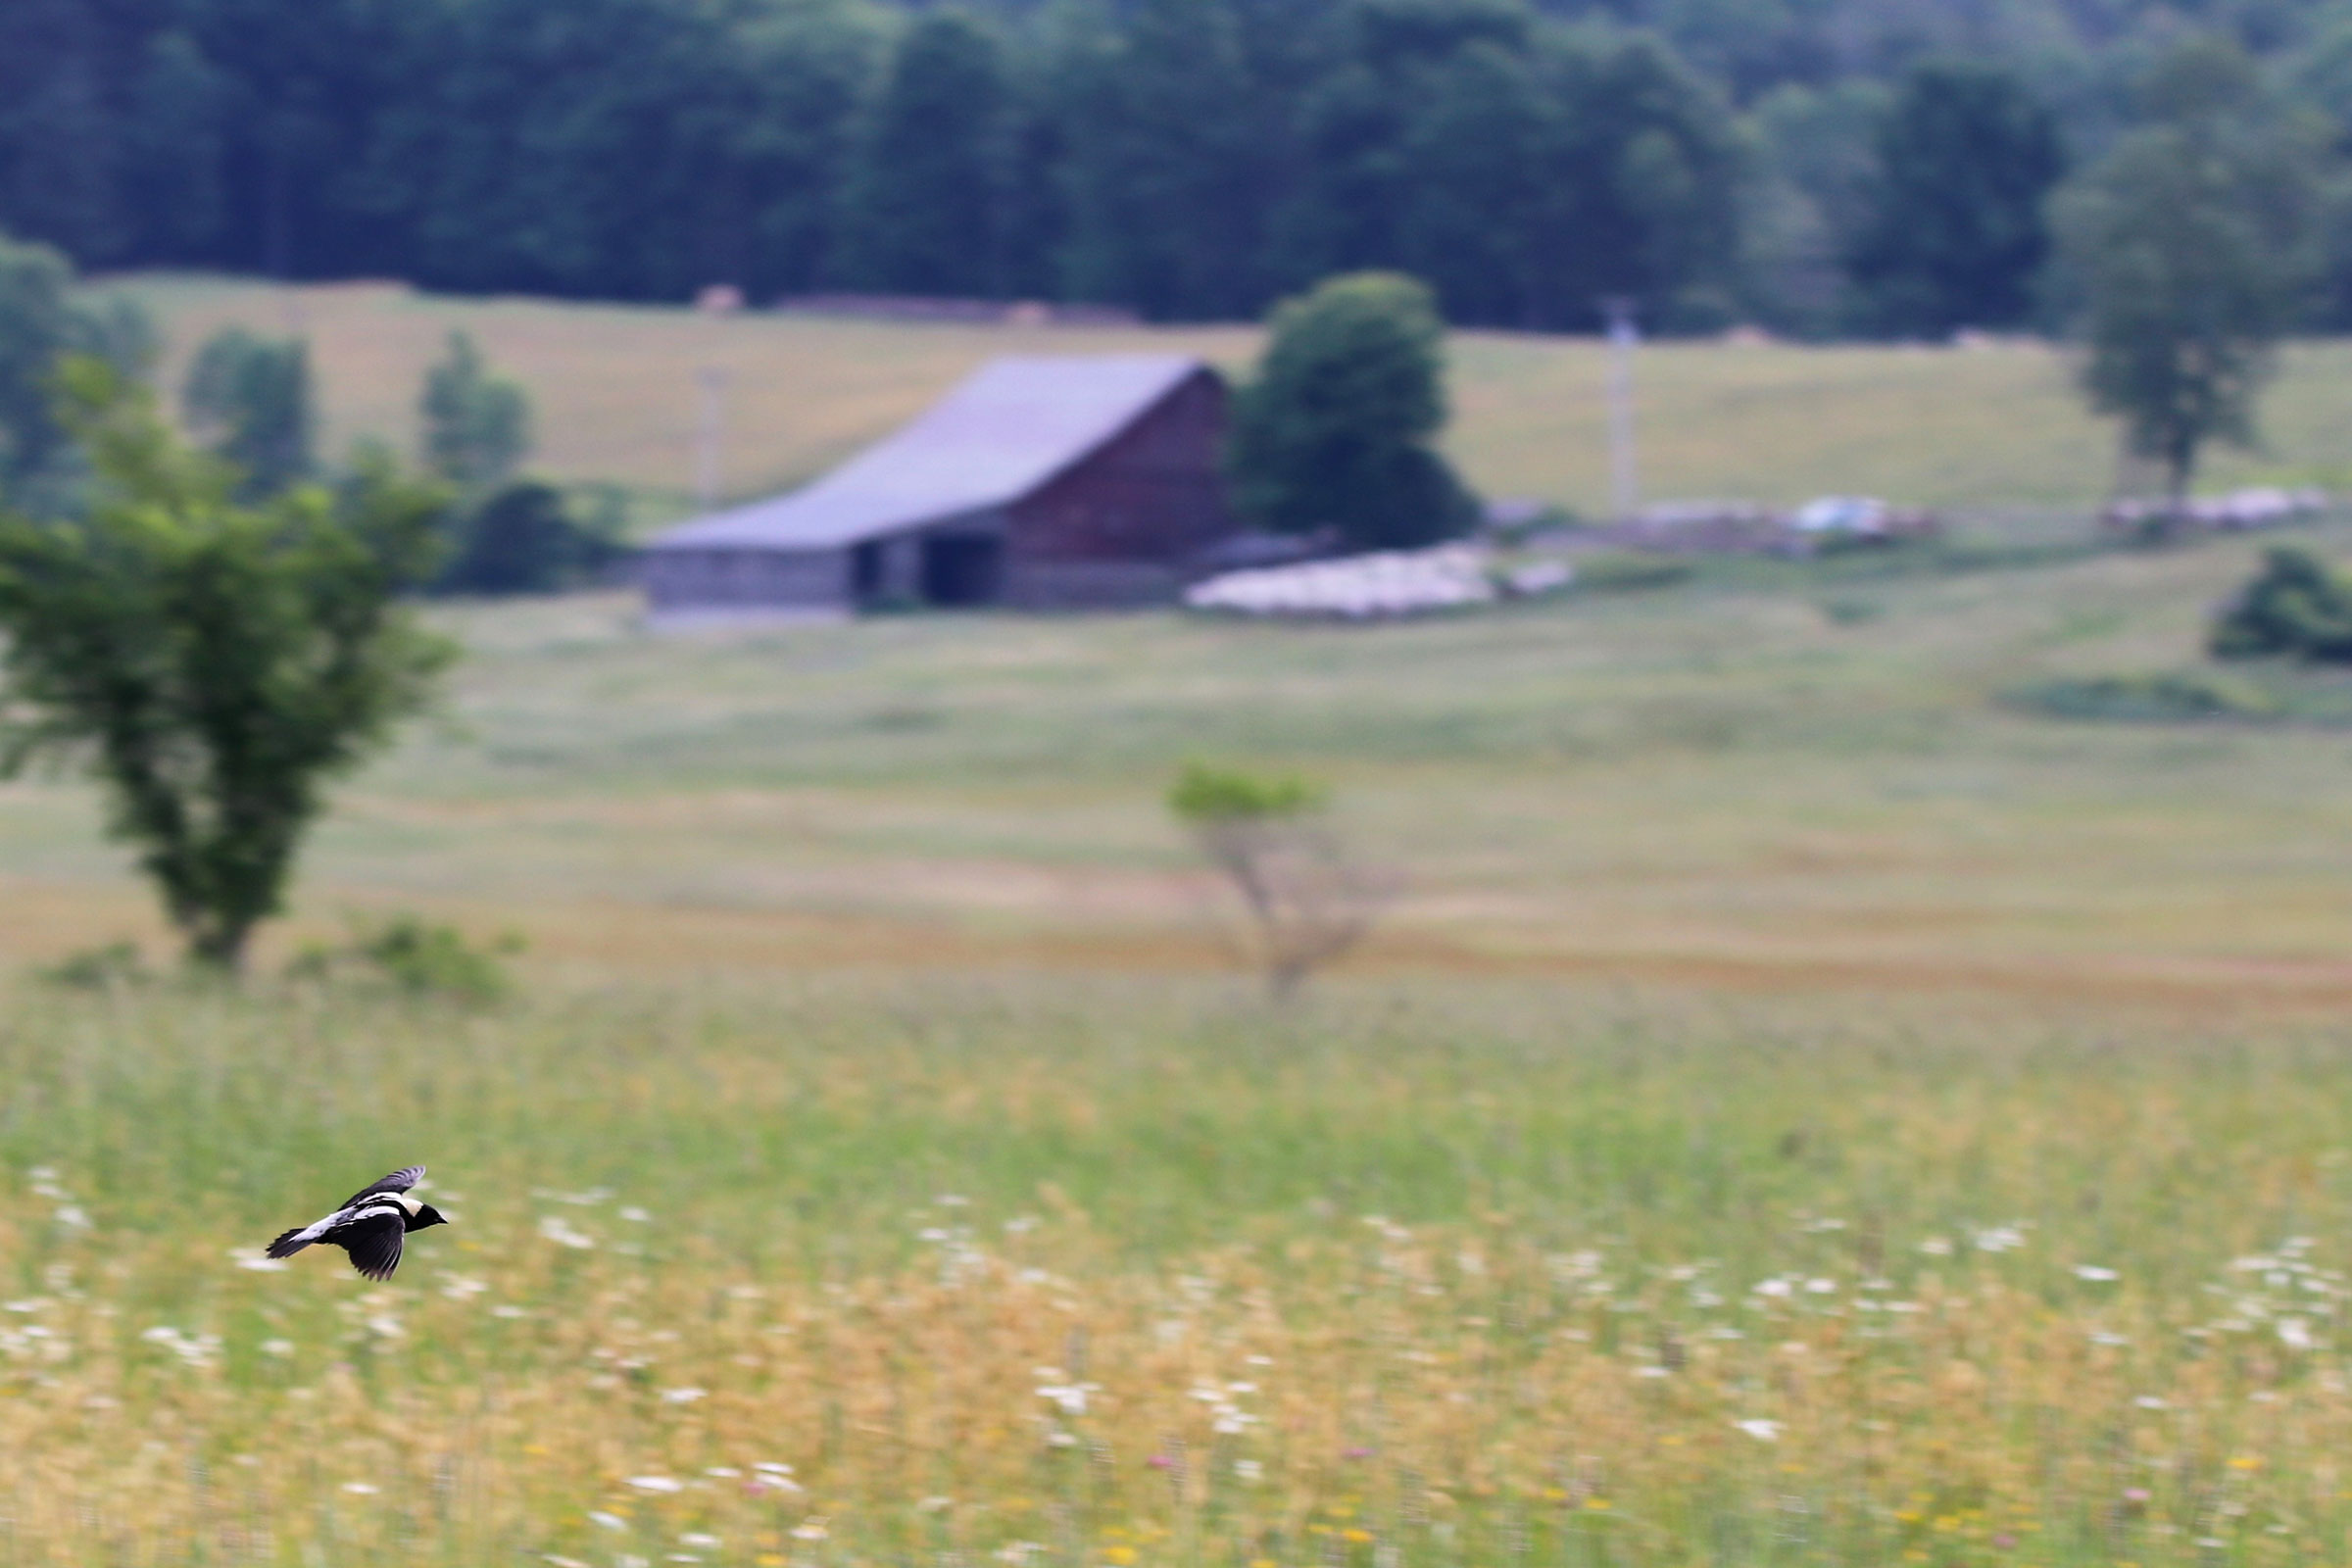 A male Bobolink flying over Roberts' Family Farm in Fair Haven, Vermont.